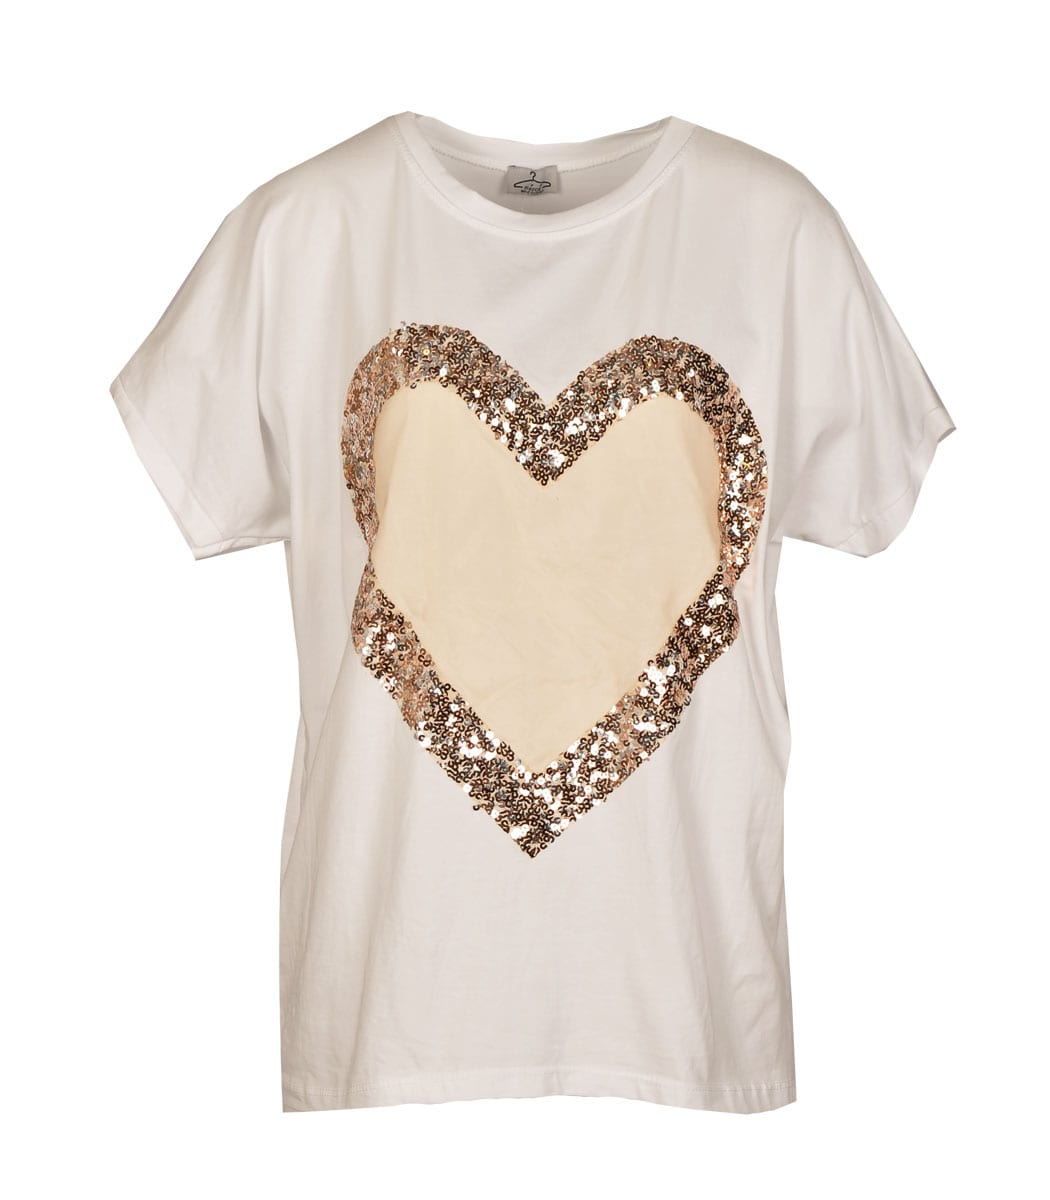 Sequin heart top